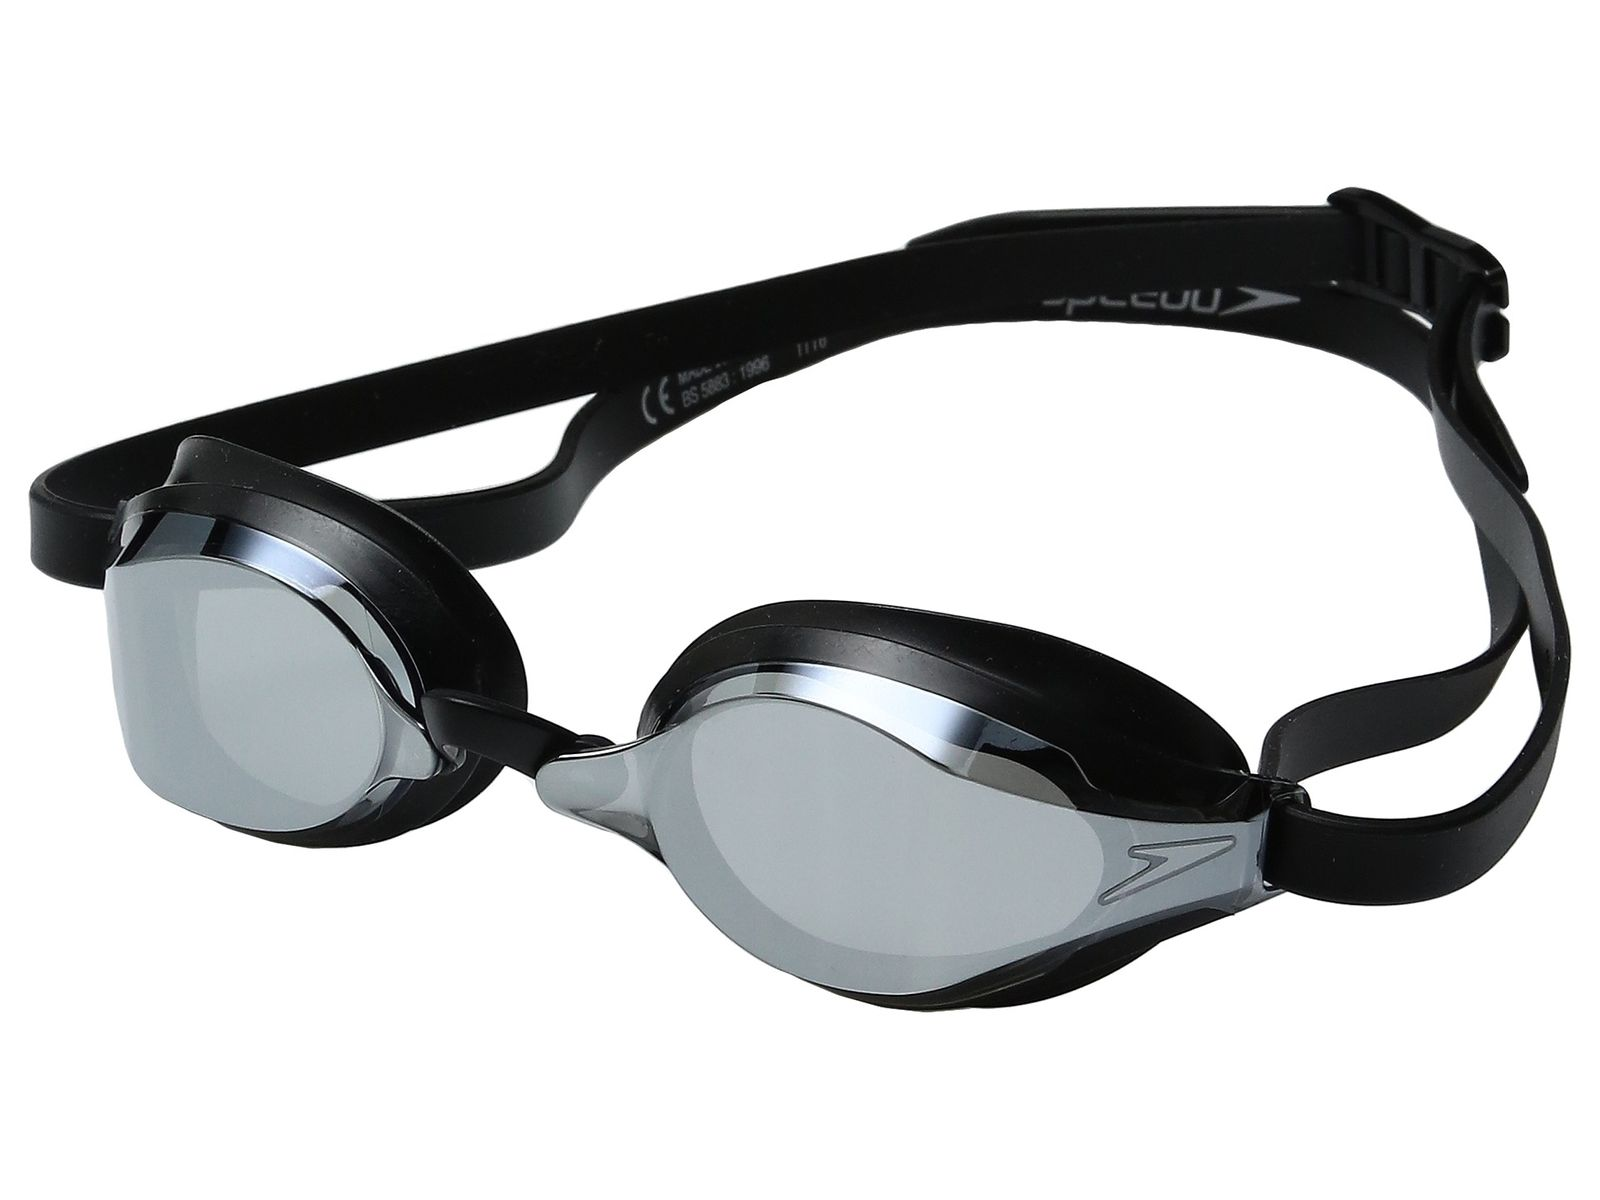 1600x1200 Speedo Speed Socket 2.0 Mirrored Swim Goggle Swimming Goggles